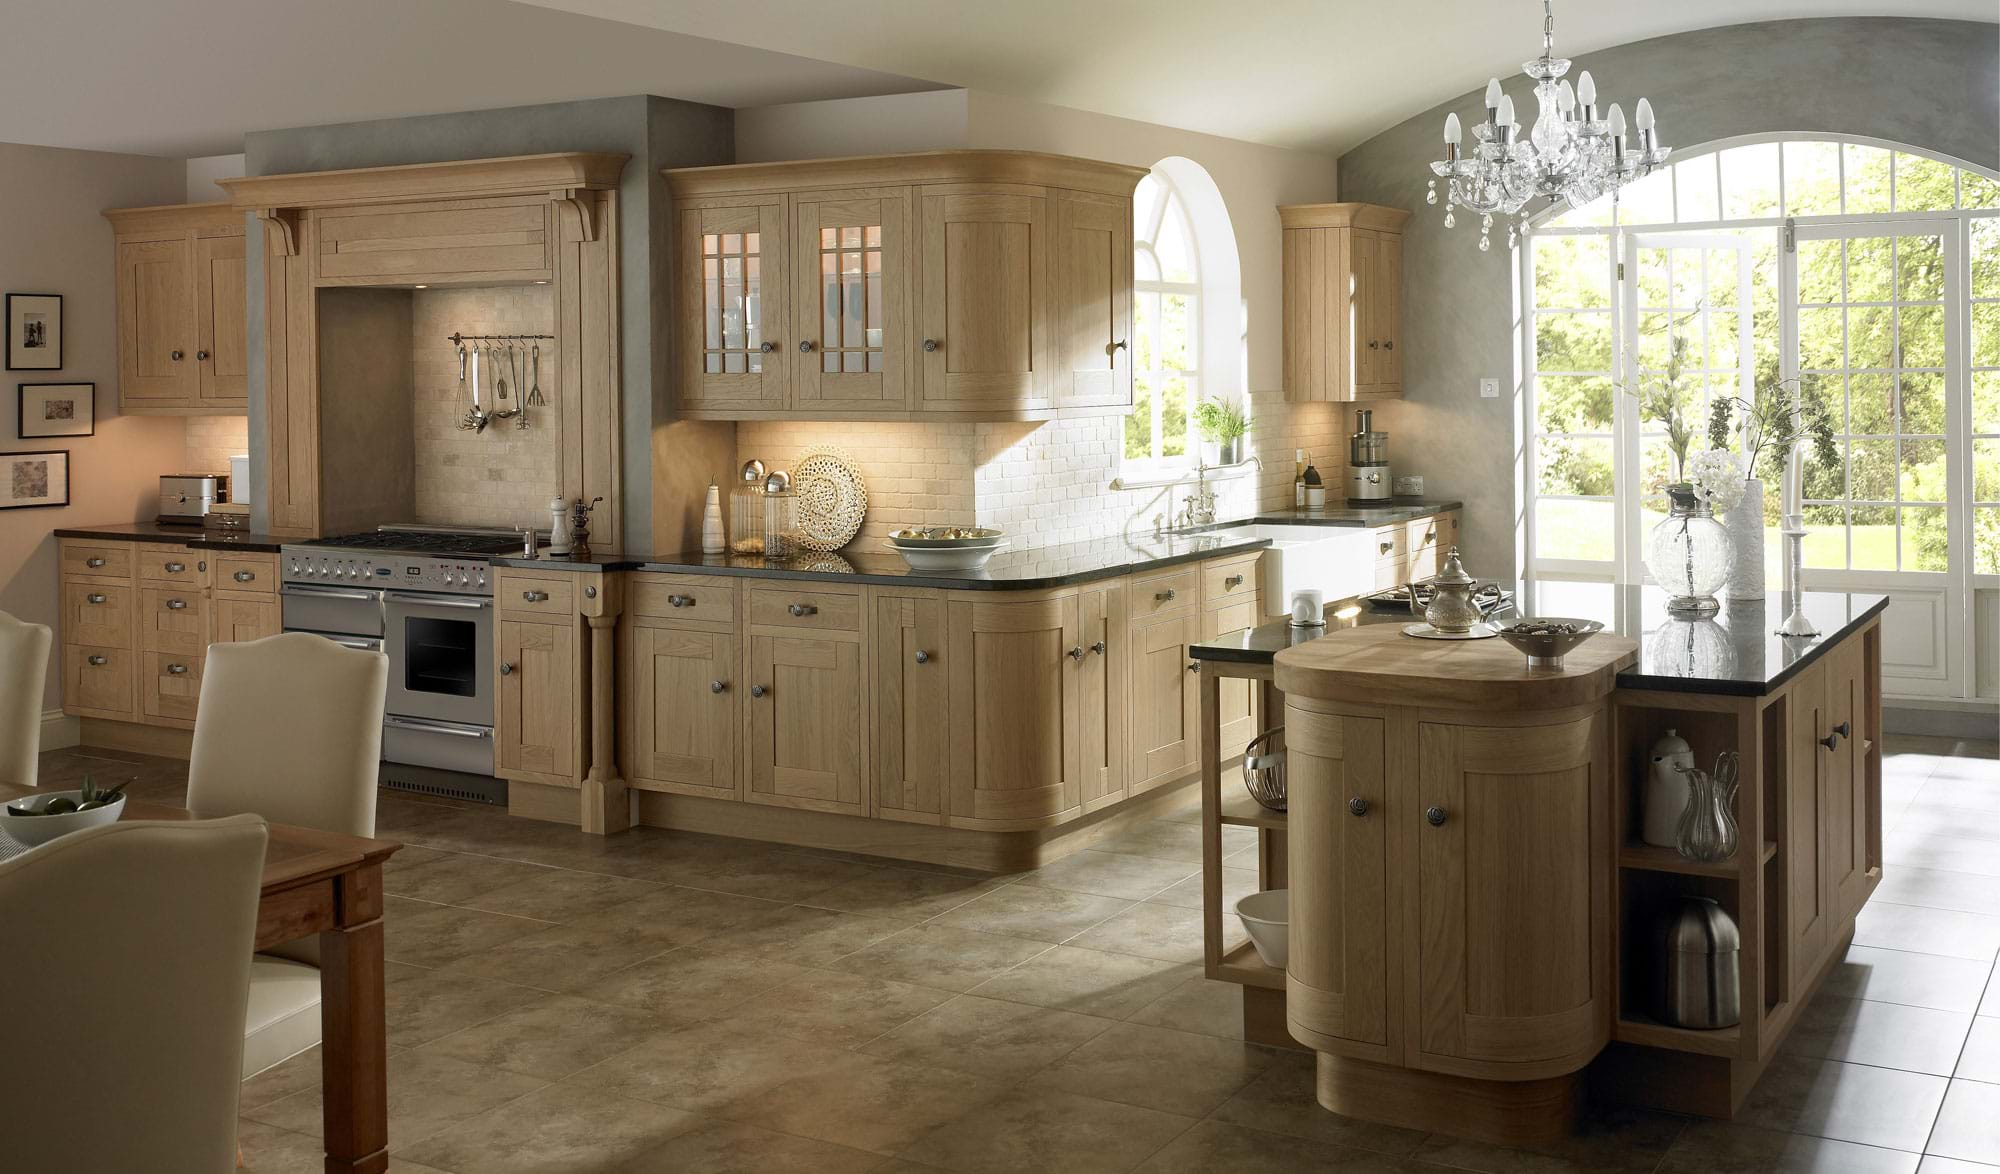 Advantages of a Traditional Kitchen